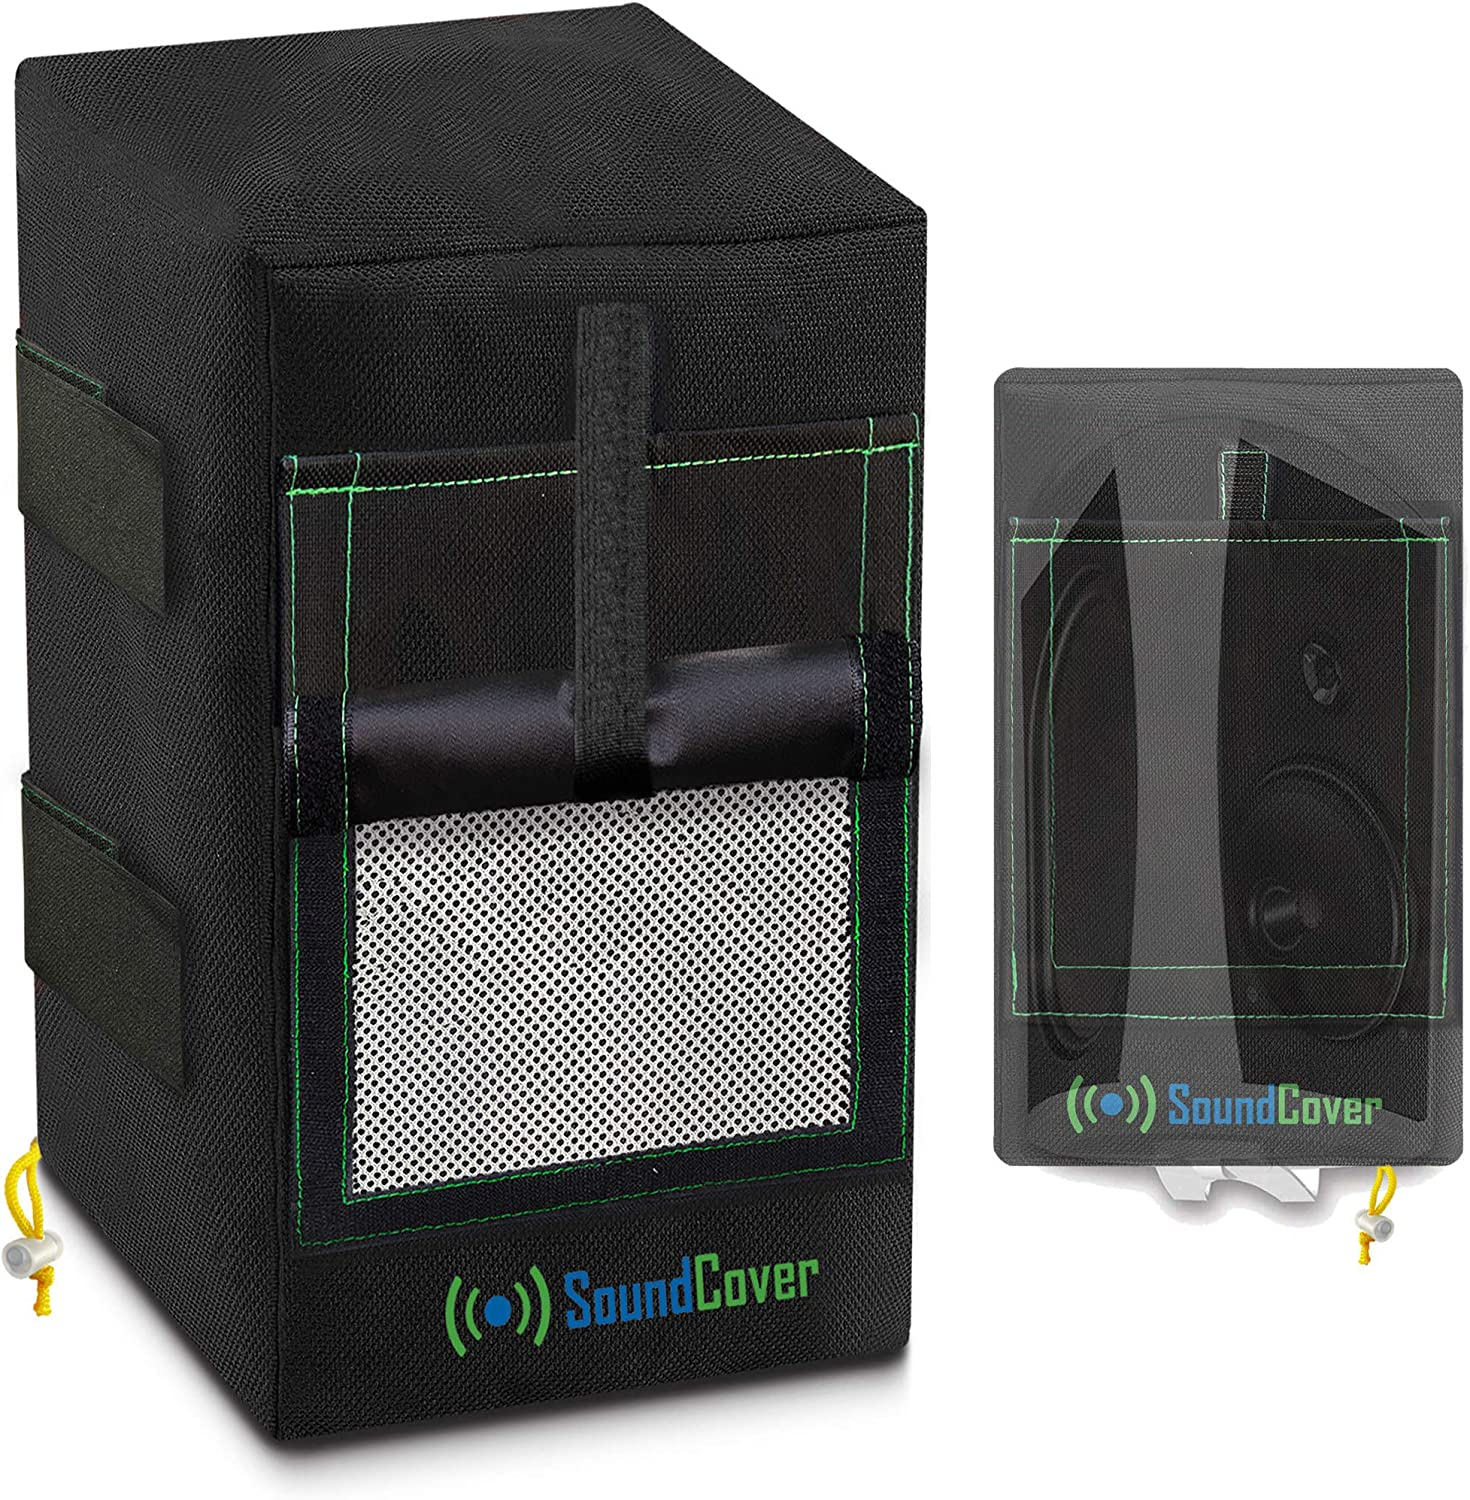 2 Black Award-winning store Miami Mall Heavy Weight Waterproof Speaker Covers Protection for UV